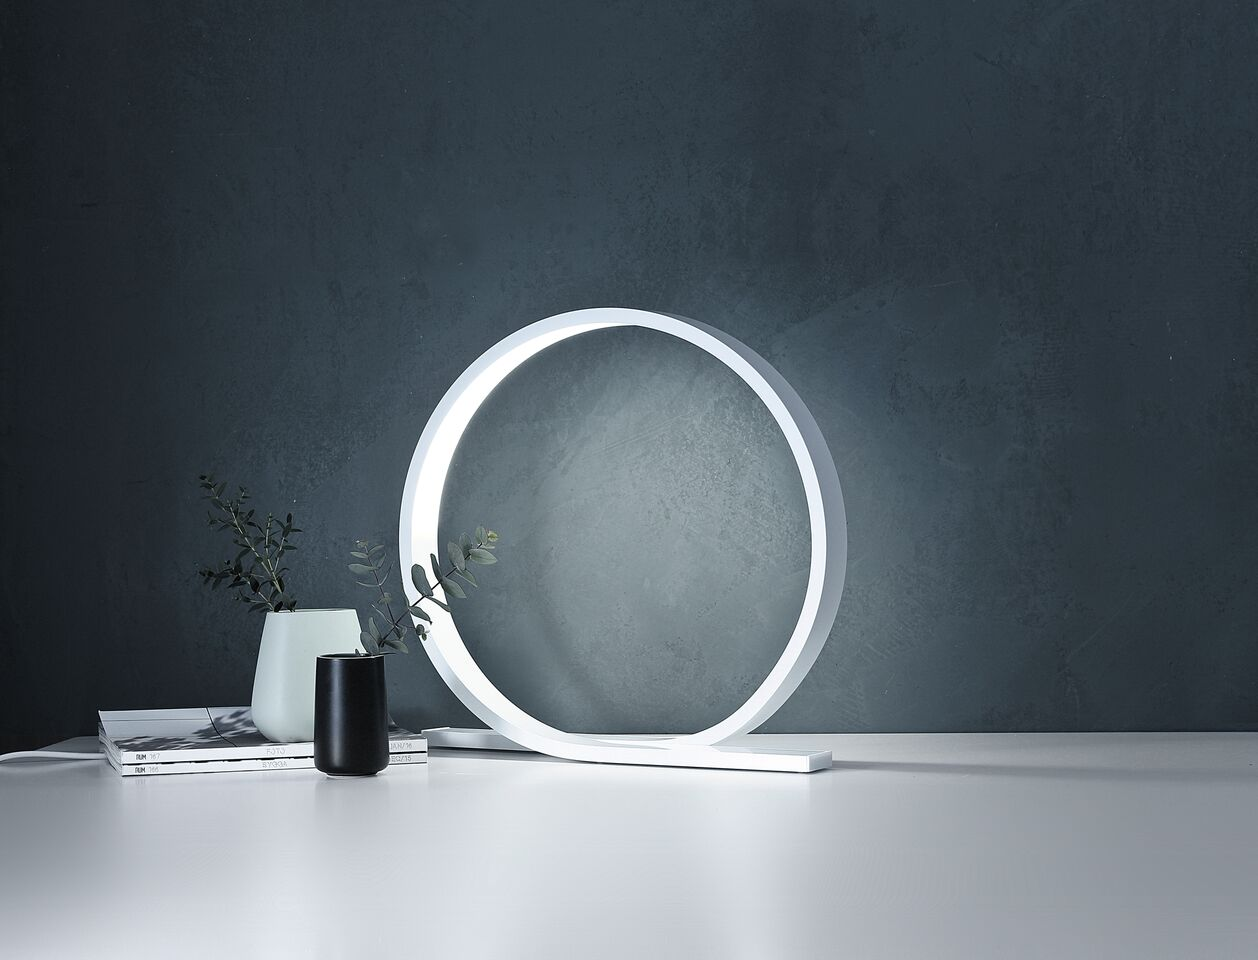 Loop table lamp by Timo Niskanen